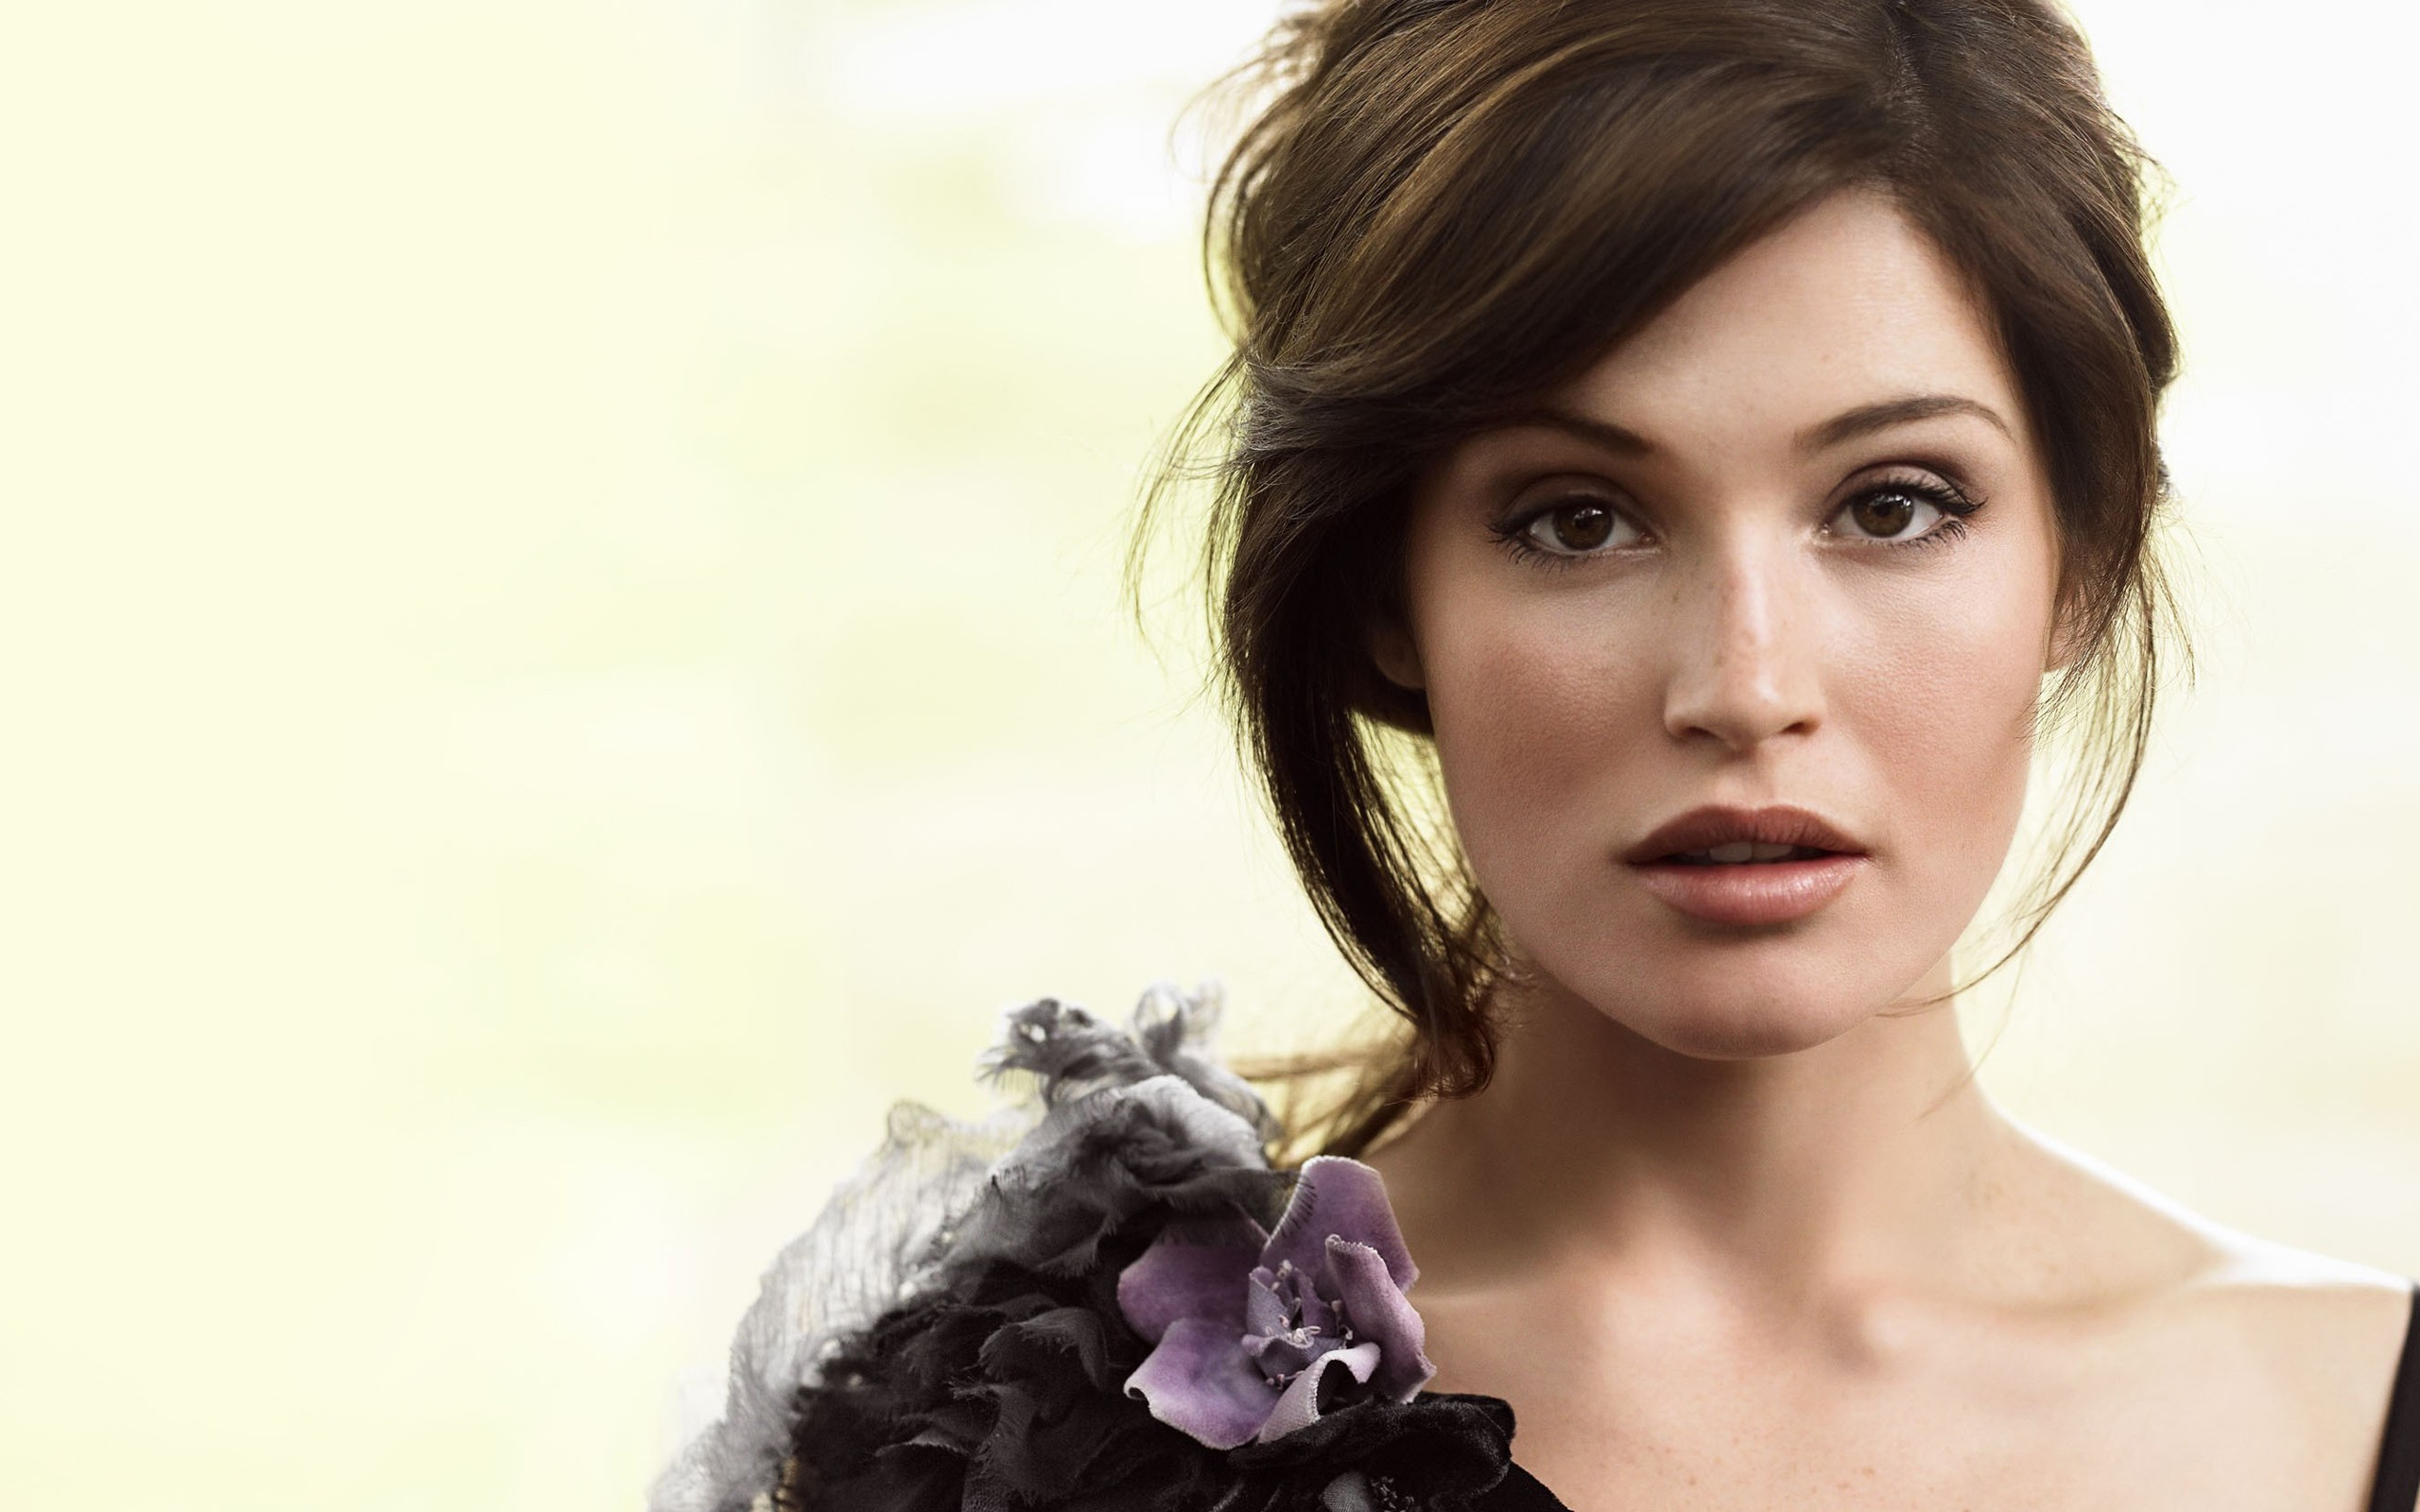 gemma-arterton-wallpaper-3